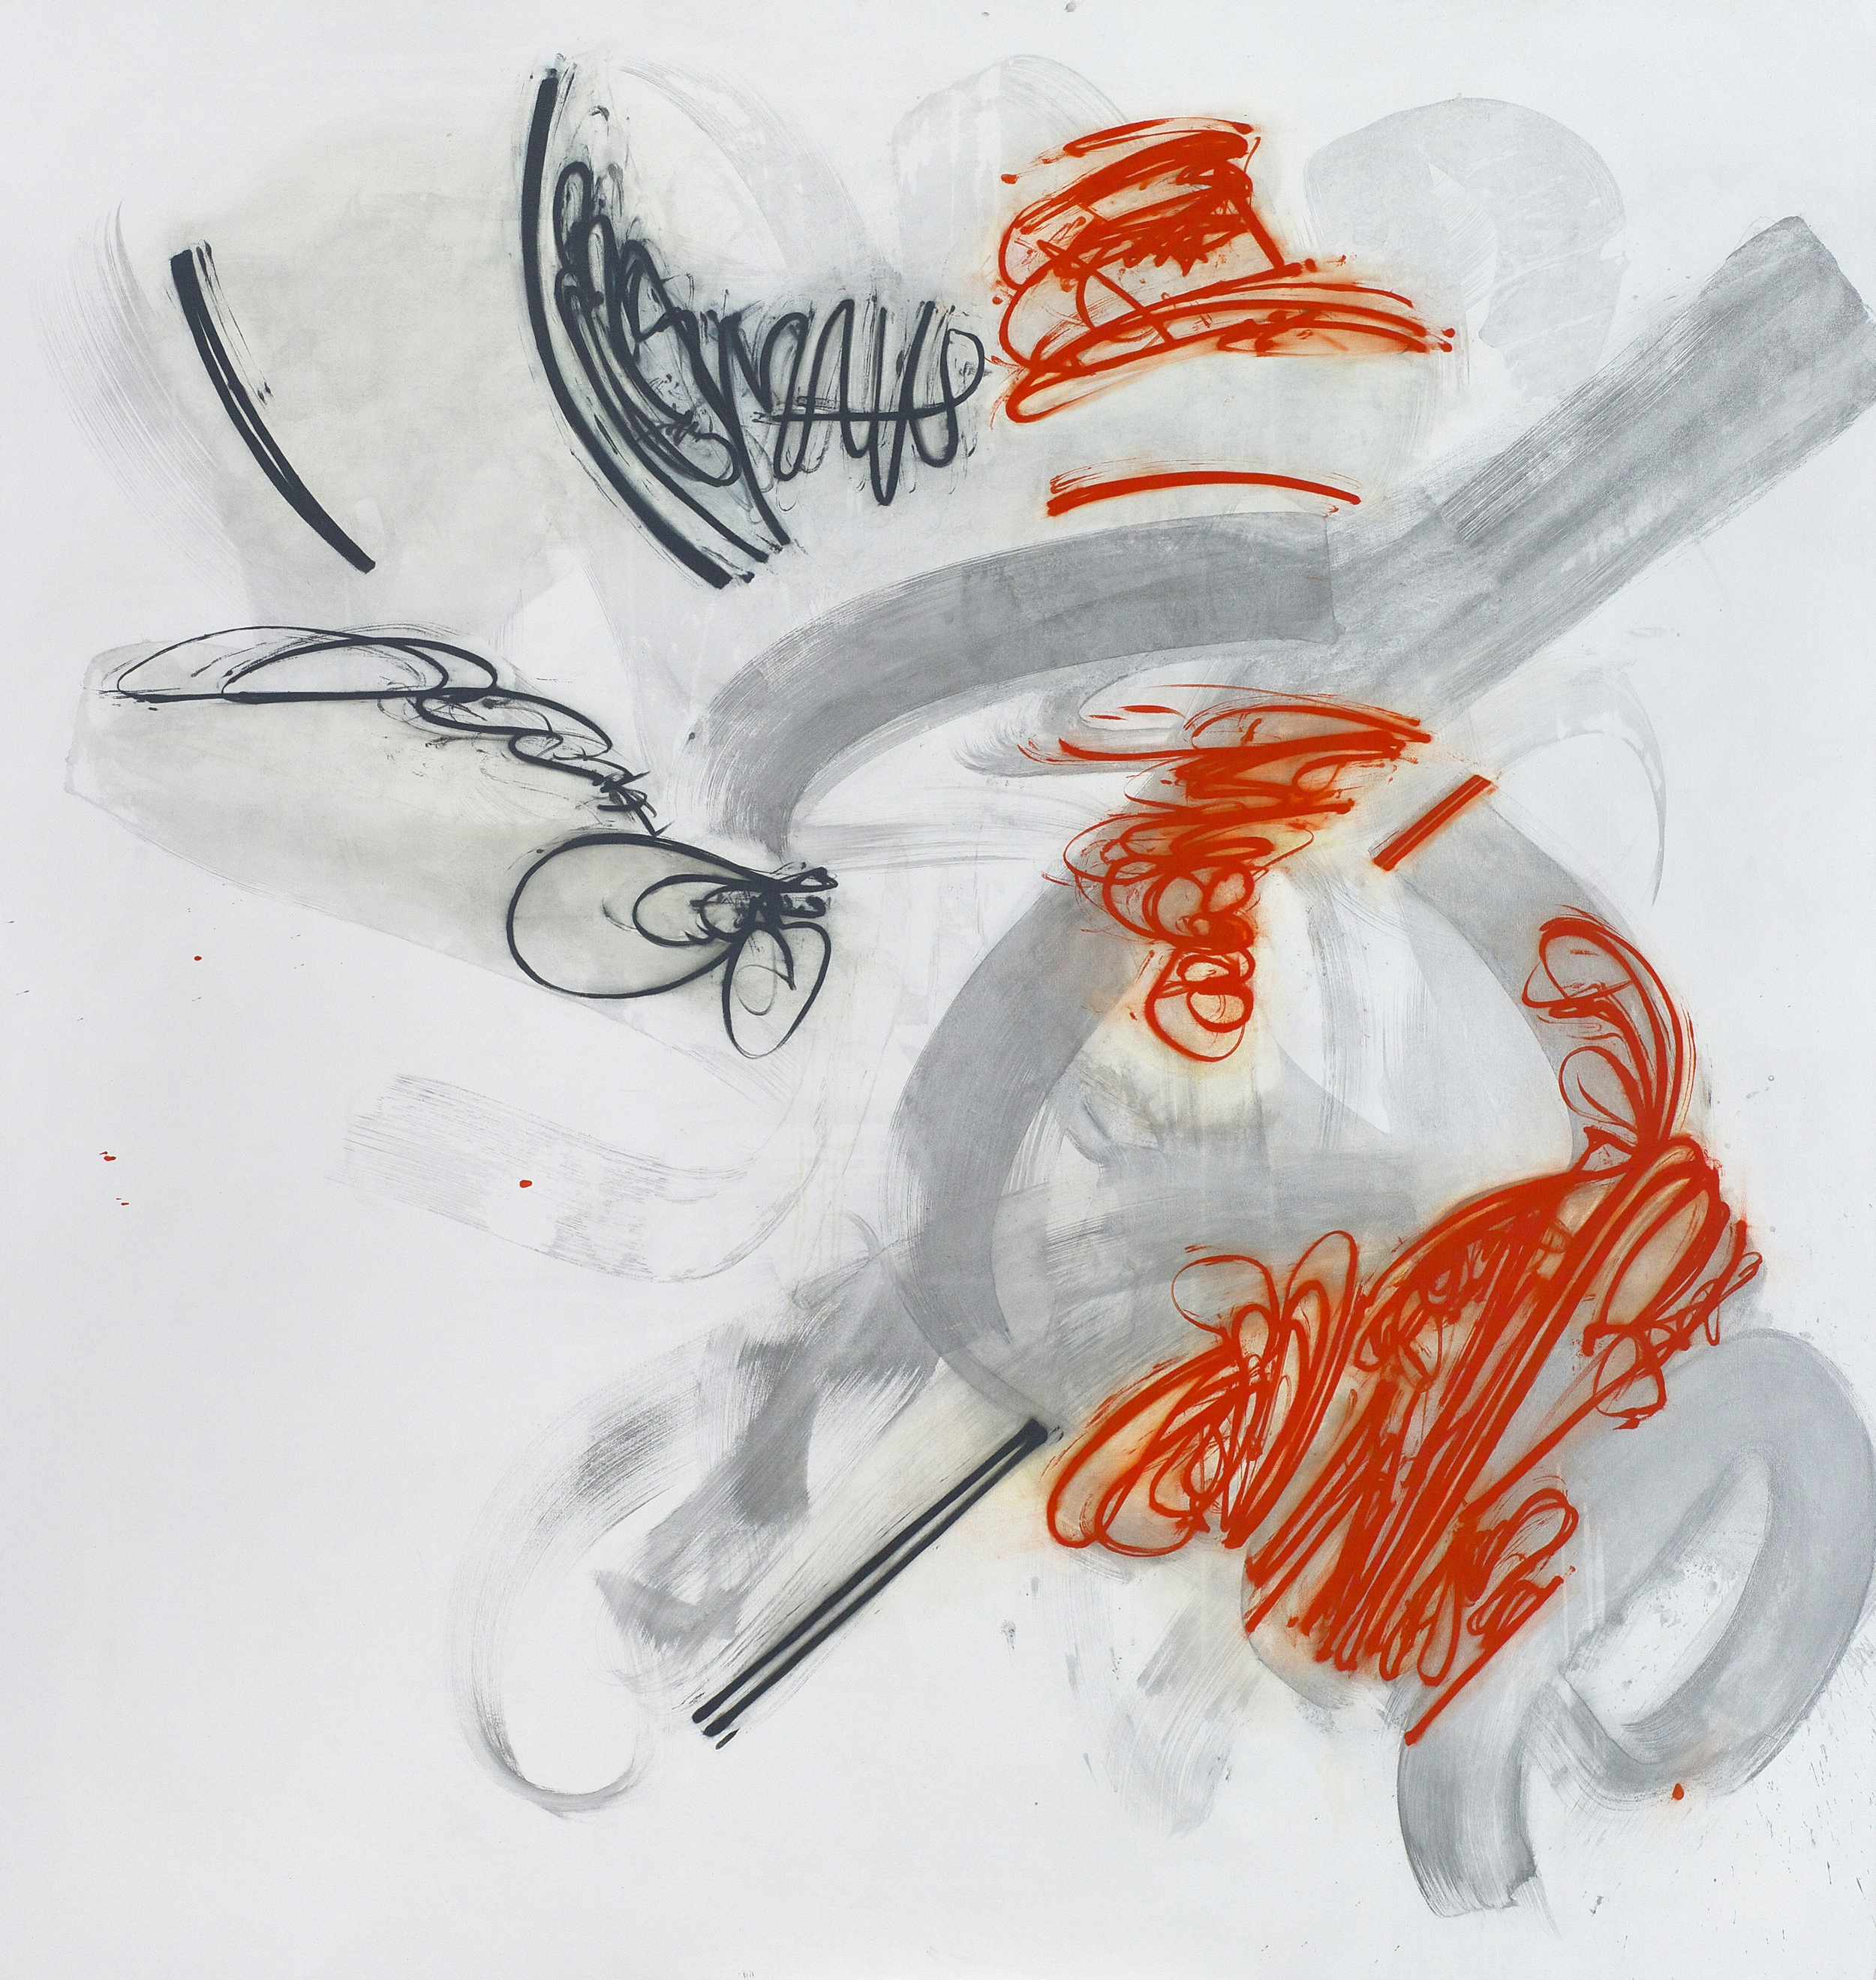 Party Line , 2011, Oil and acrylic on canvas, 73 x 70 inches